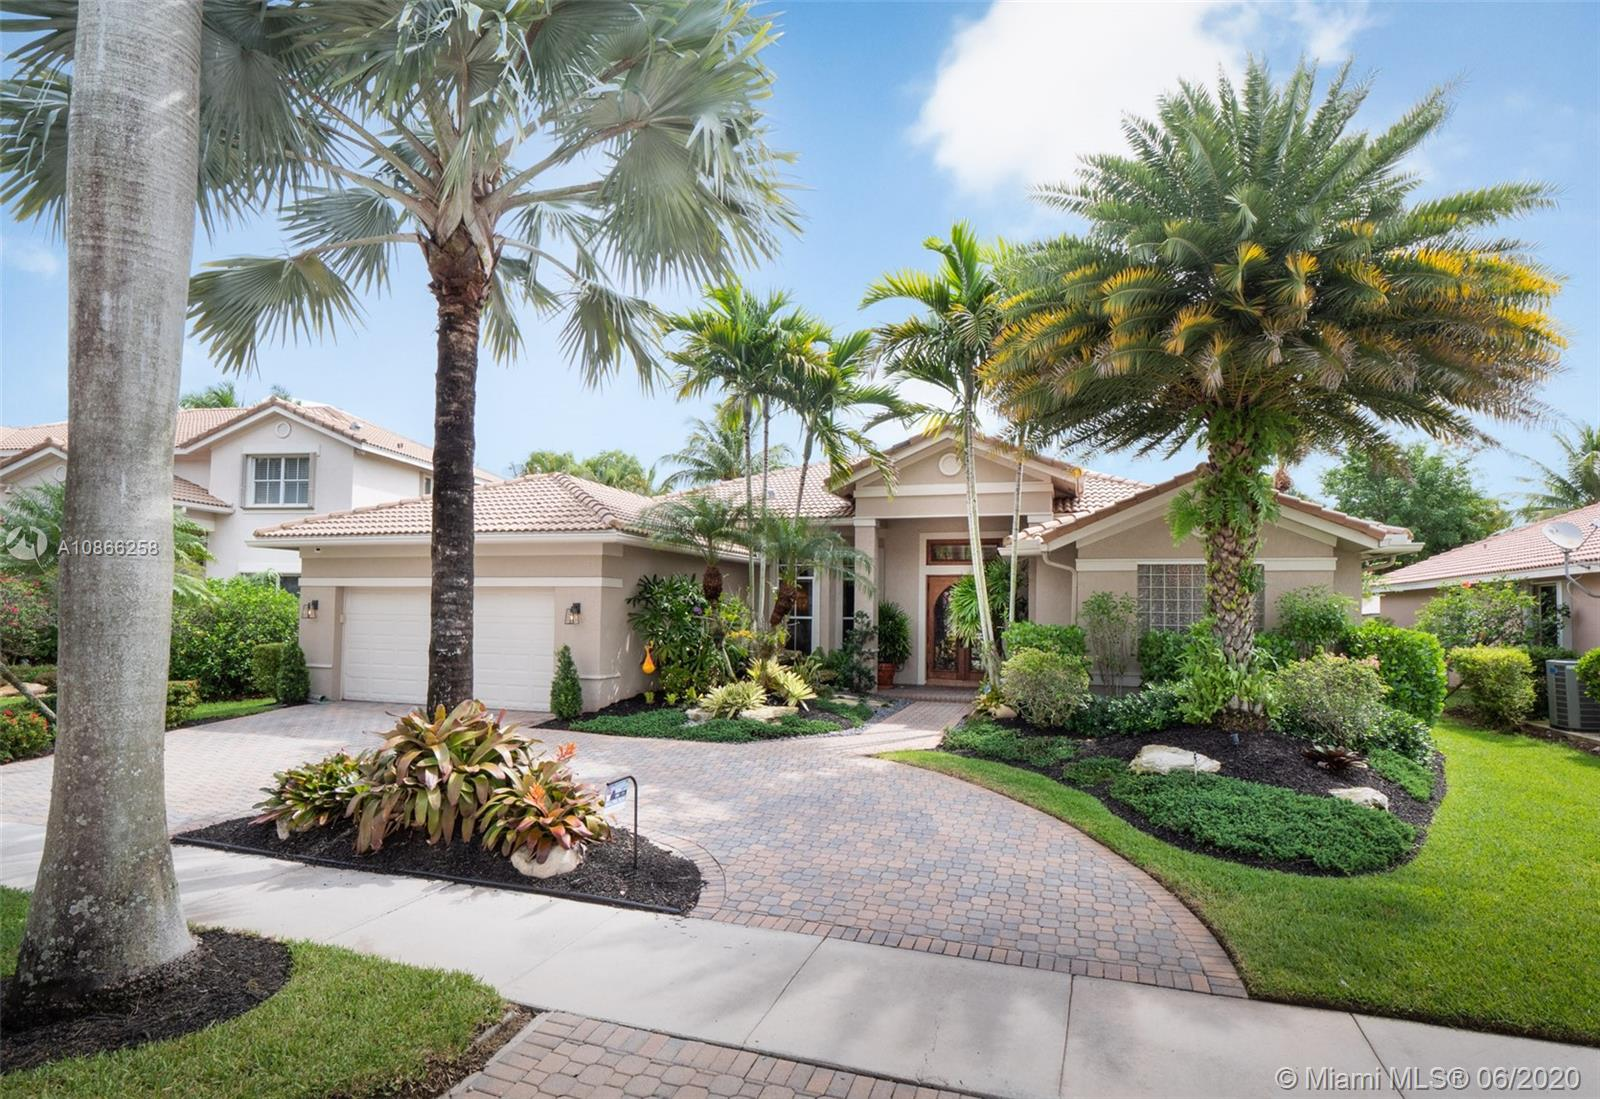 Custom home tucked on a royal palm tree-lined street with a circular paver driveway.  Popular triple split floorplan  Shows like a decorator model.  New Kitchen with top of the line Stainless Steel appliances, granite countertops. Neutral stone tile throughout living areas.  Extensive crown moldings, coffered ceilings, stunning custom window treatments, and drapes. All bathrooms renovated. Private fenced yard with a resort-style freeform pool and paver patio. Lush tropical landscaping. Walk to community park.